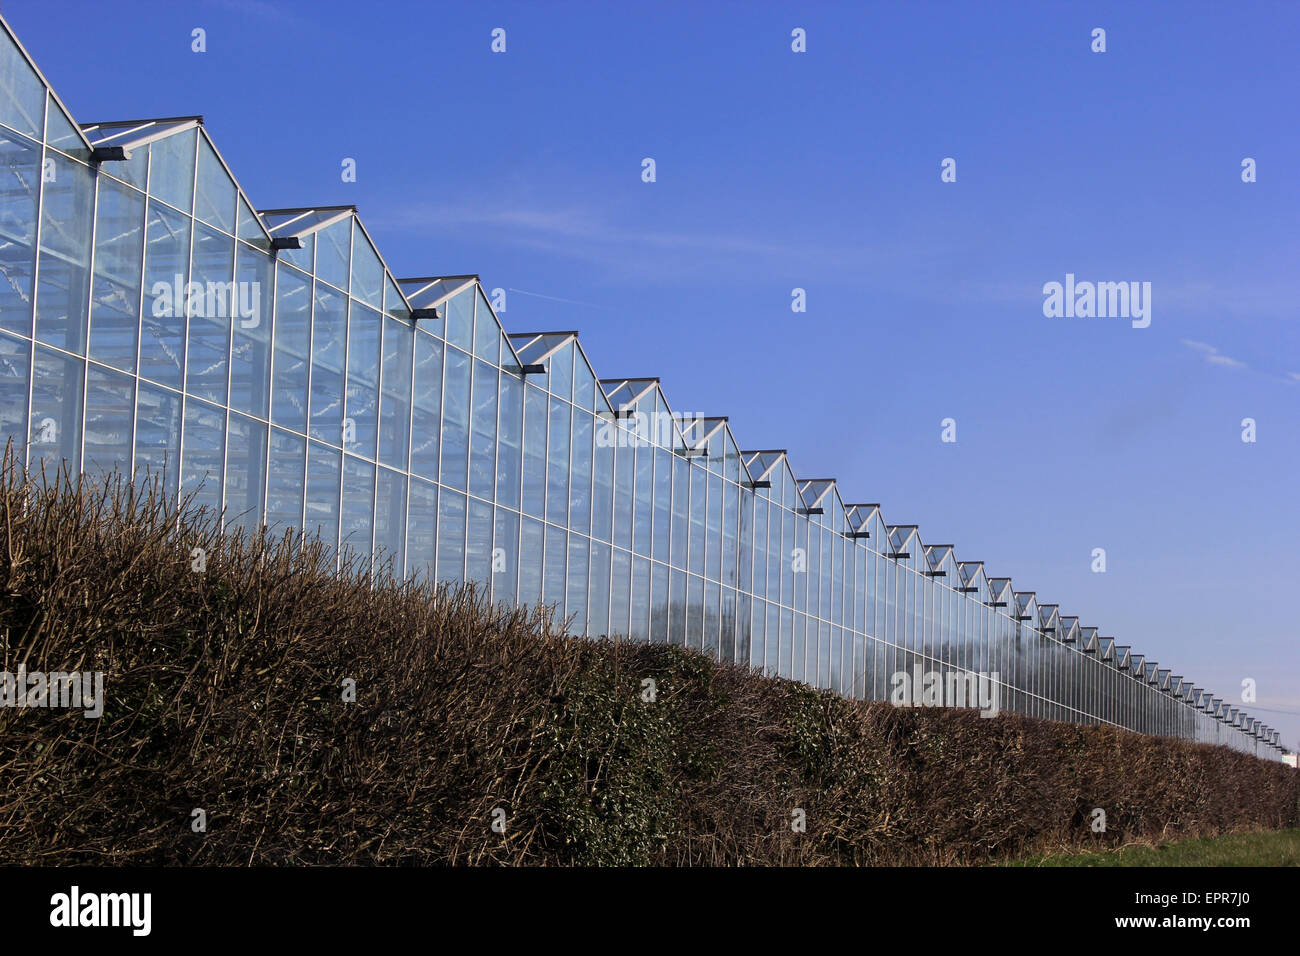 Commercial greenhouses in Llandow, VOG - Stock Image